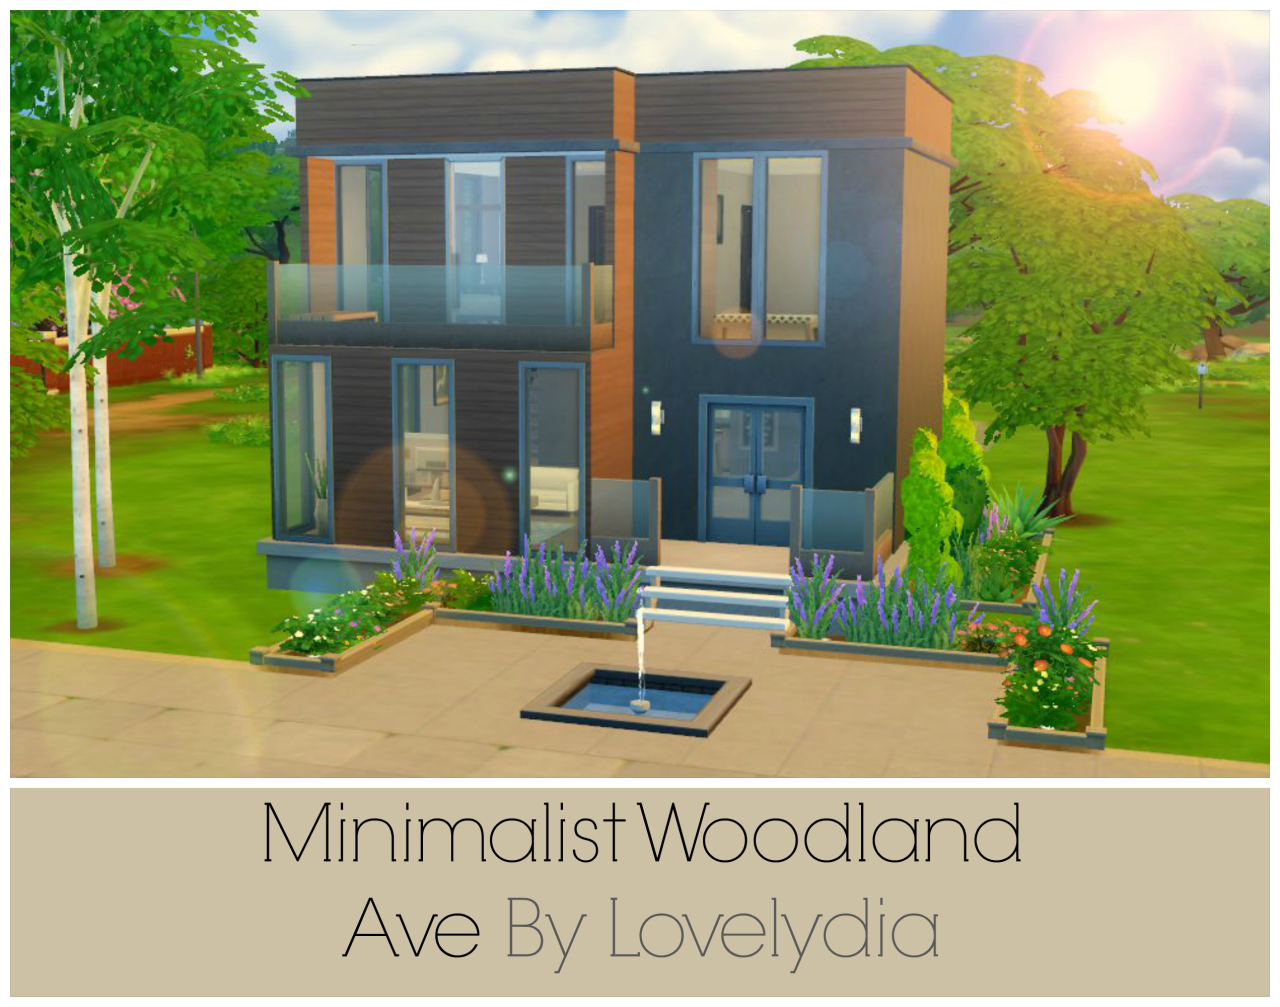 My sims 4 blog minimalist woodland house by lovelydia101 for Minimalist house blog